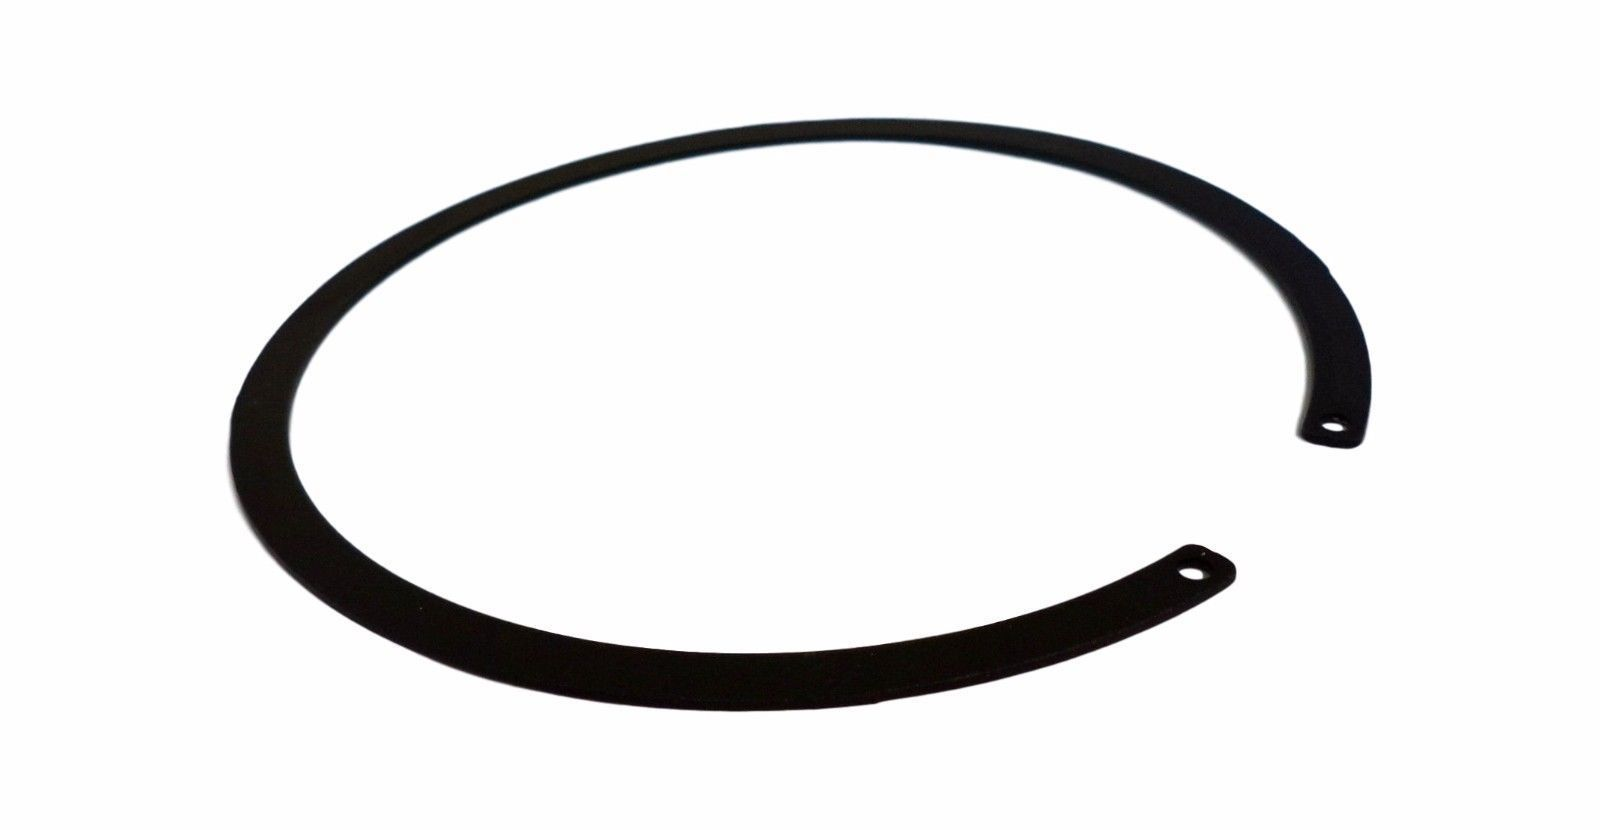 NAPA TLR10 Fuel Lock Ring Fits 1992-2001 Buick Chevrolet